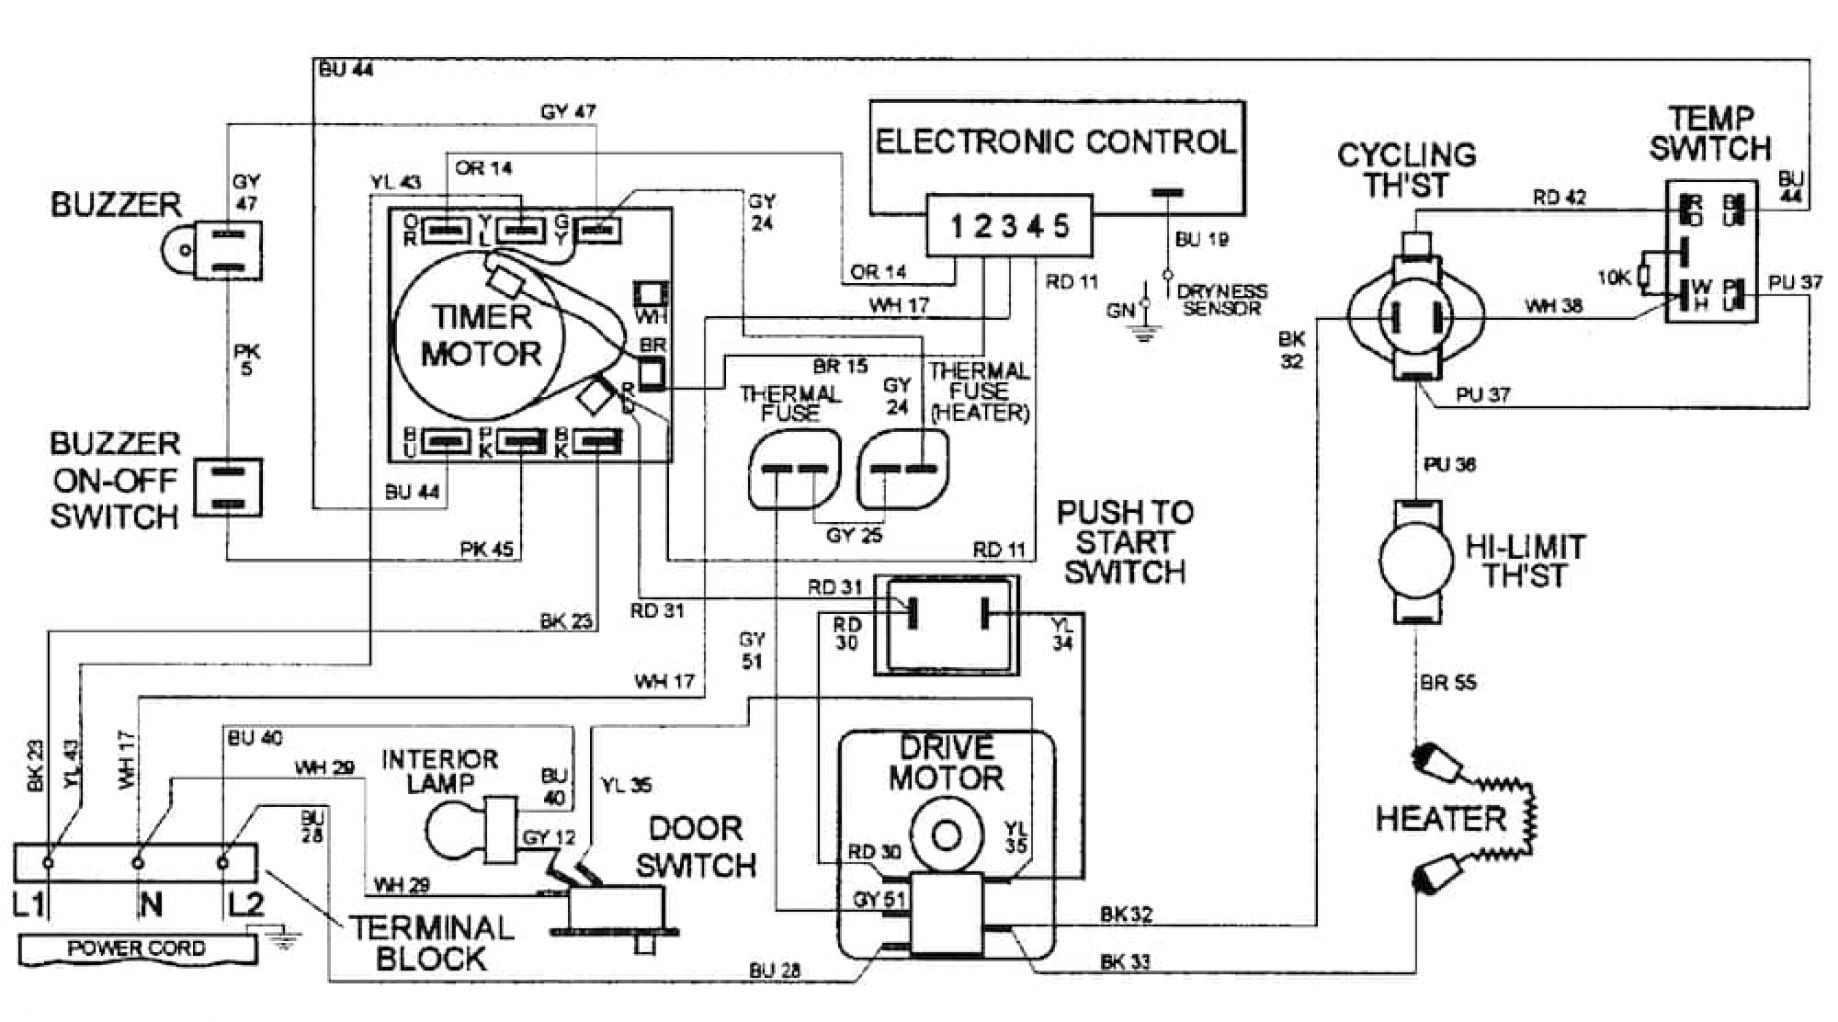 Wiring Diagram For Whirlpool DryerWiring Diagram